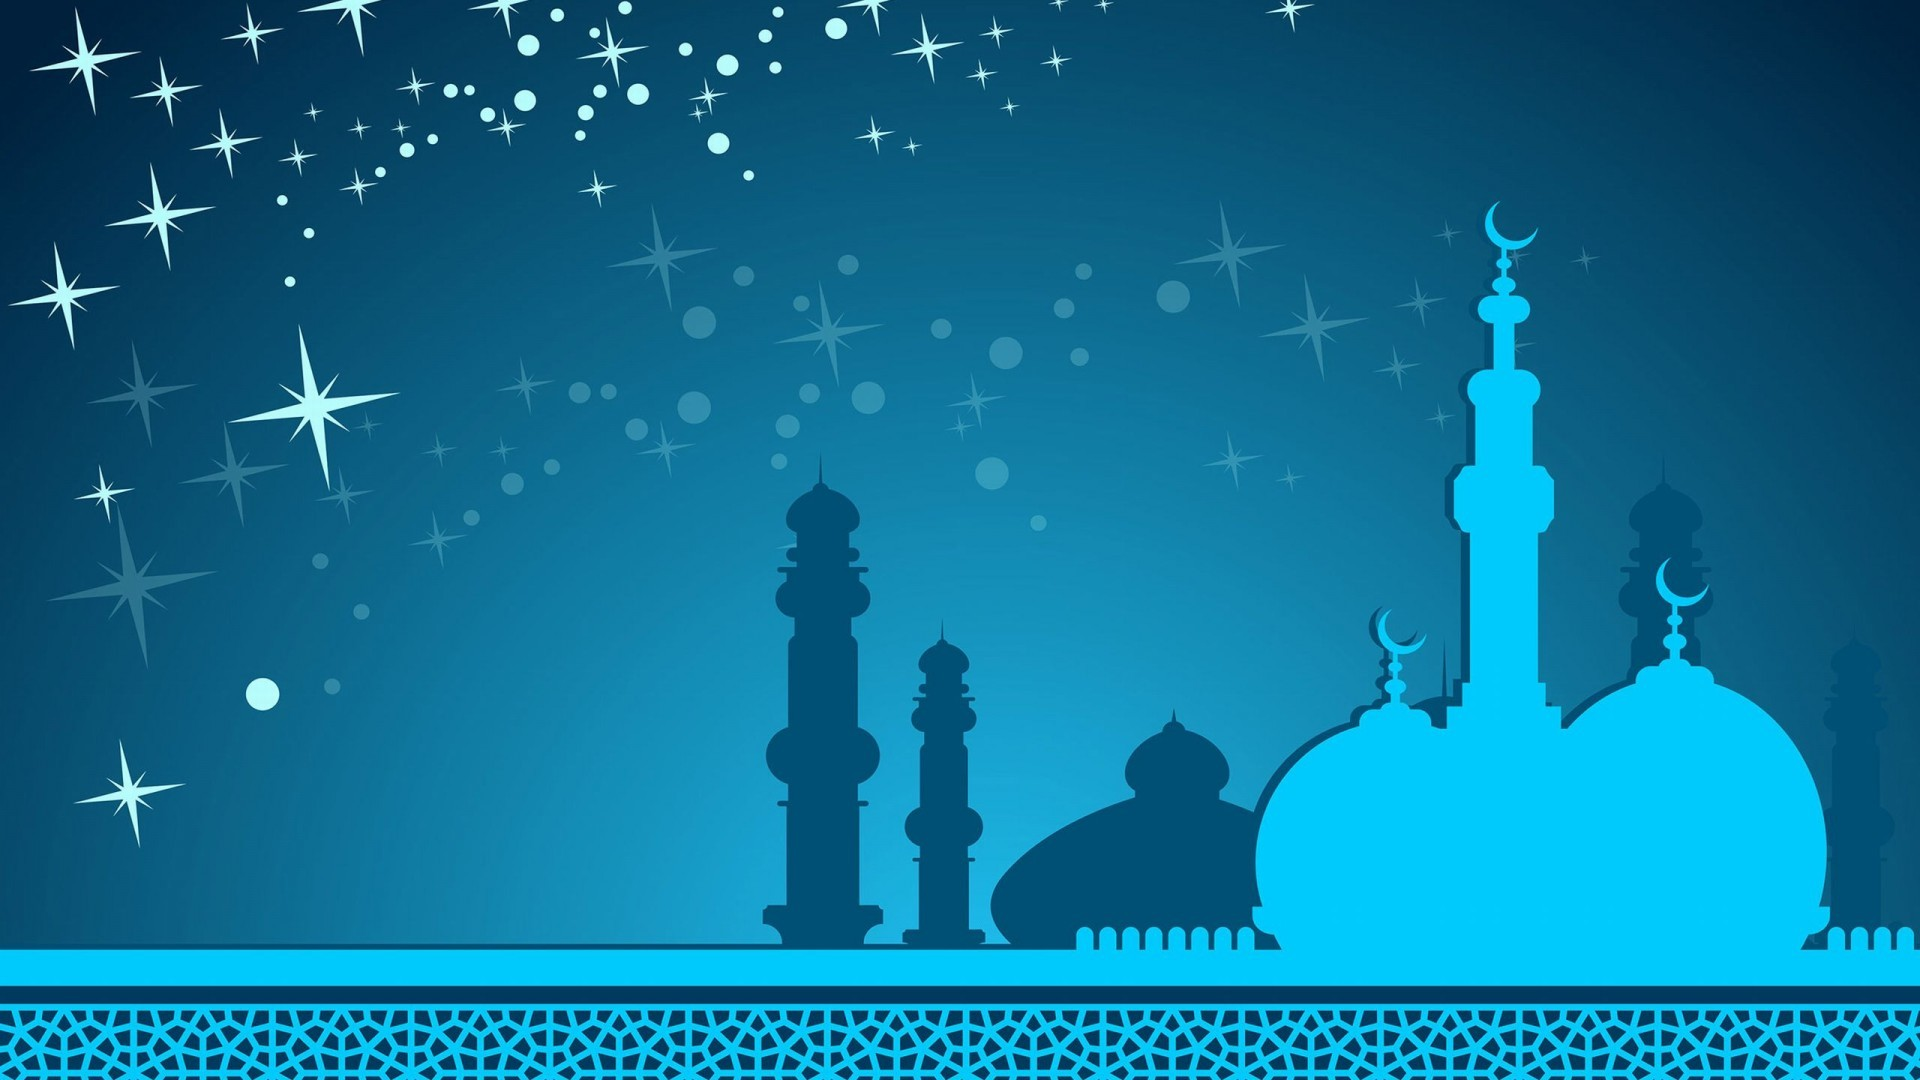 1920x1080 Background Masjid HD Wallpaper Download For Desktop Anime Muslim 15